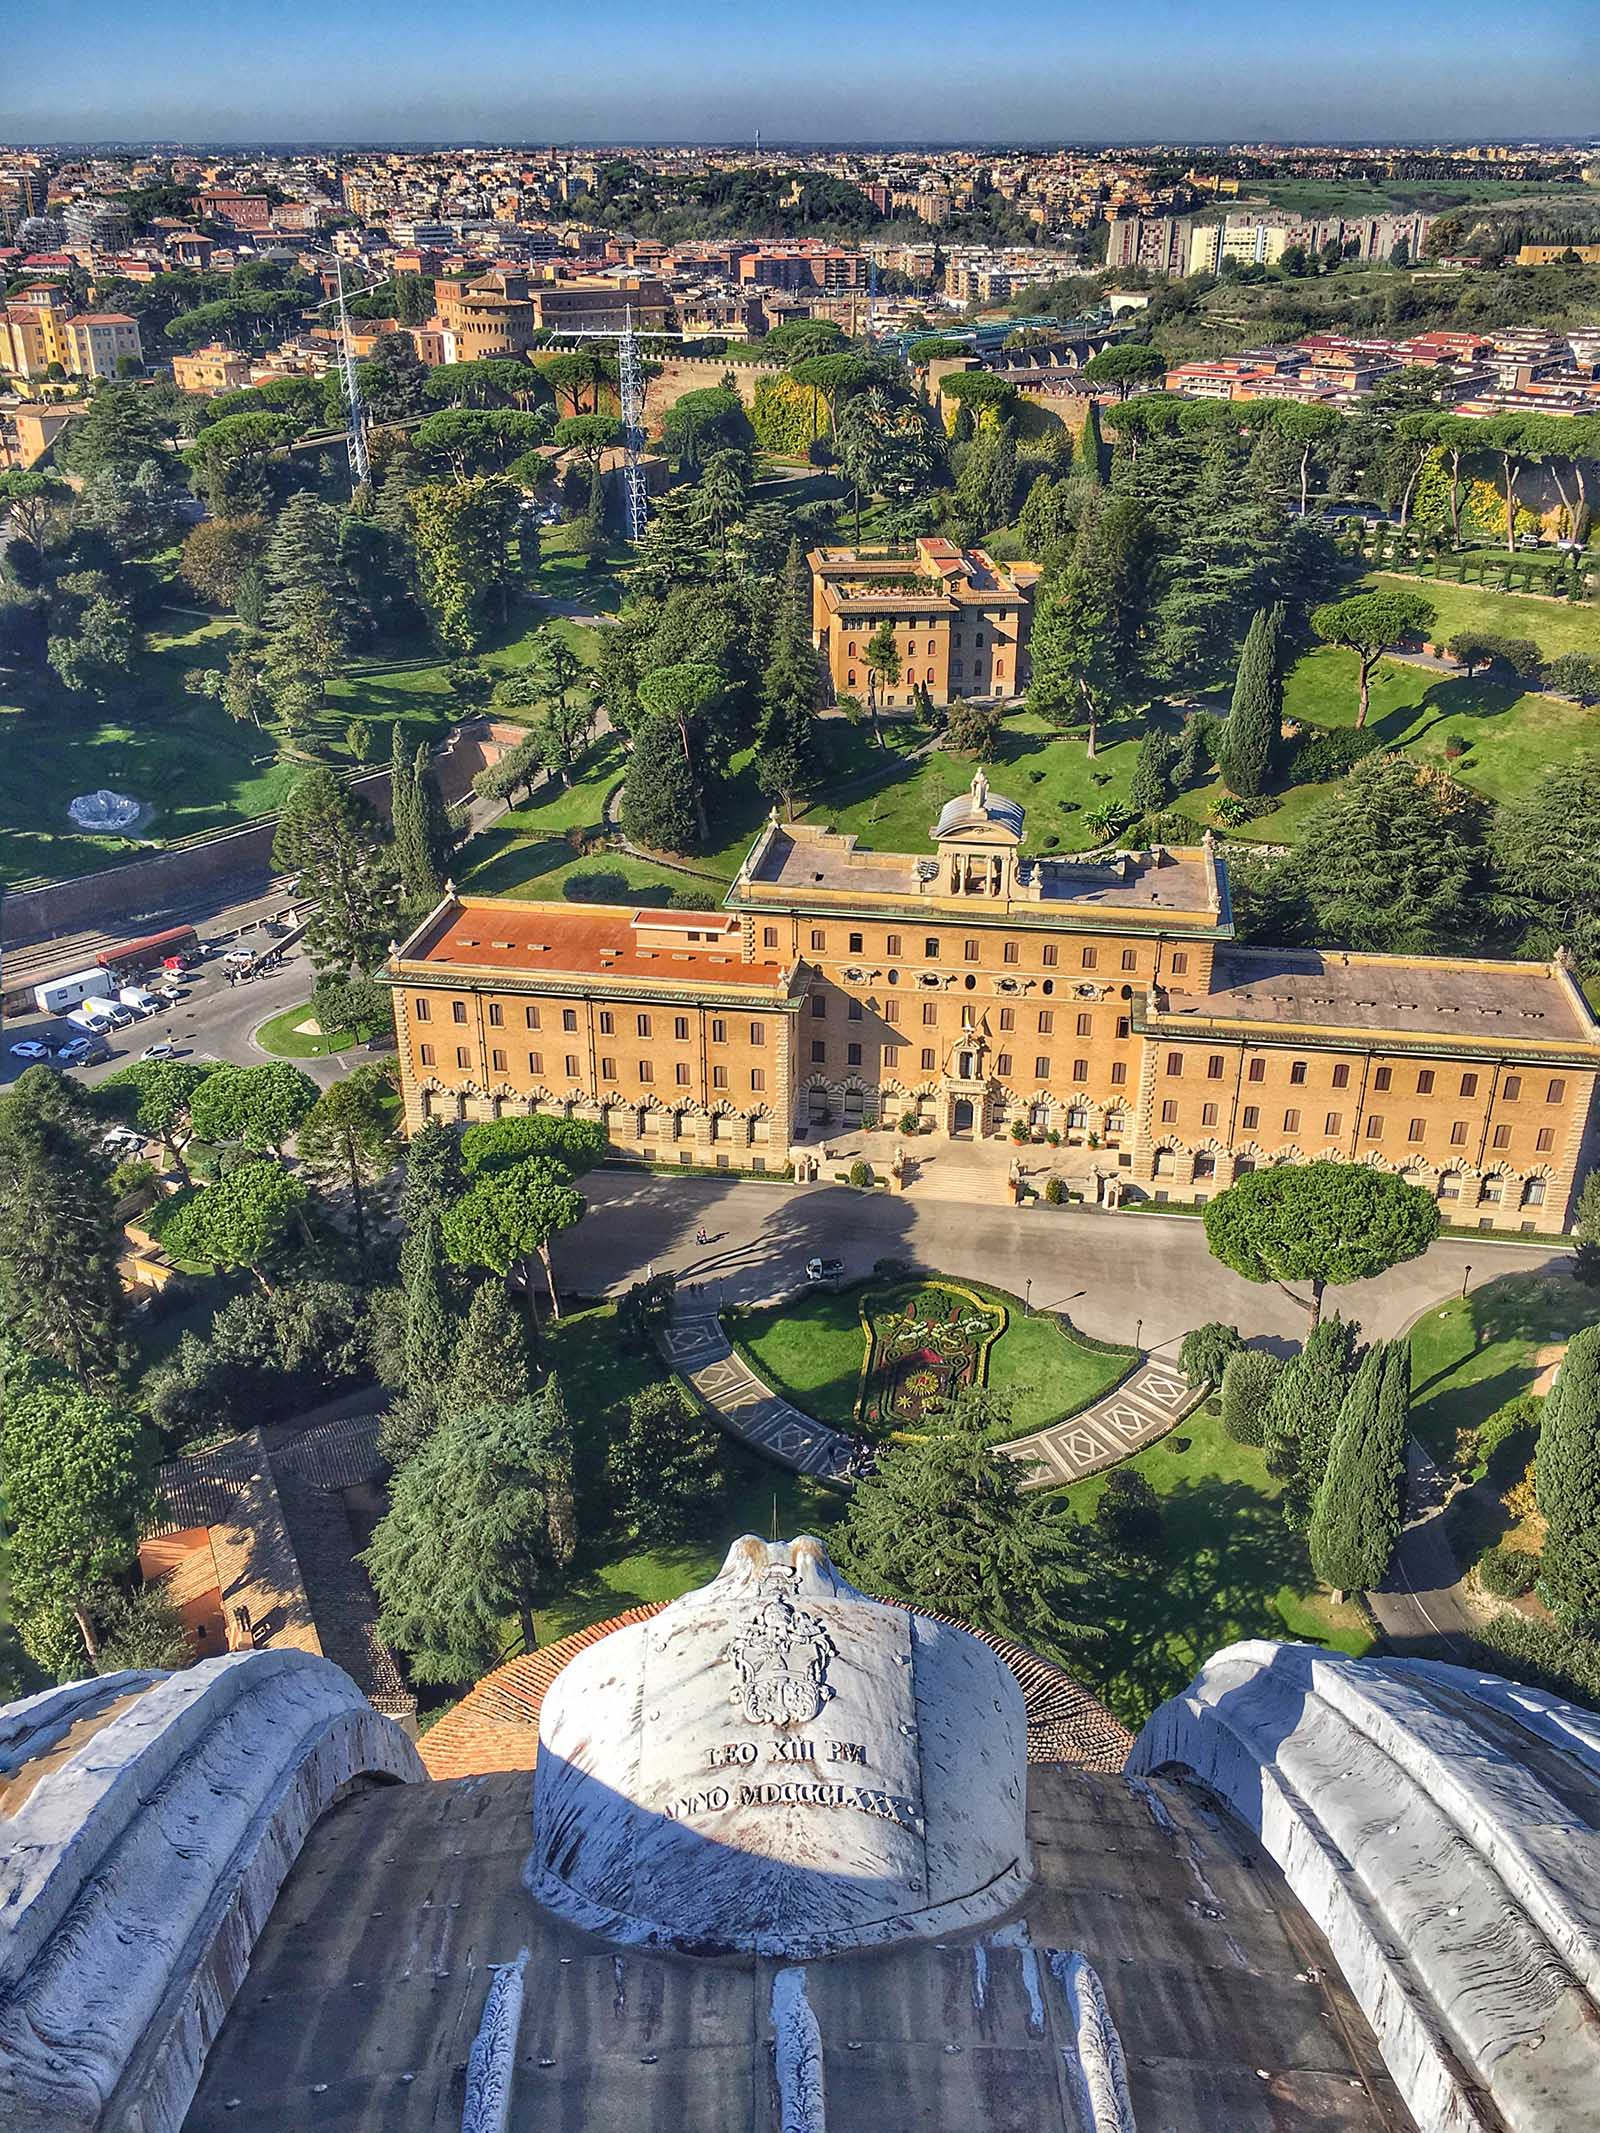 Vatican Museums And Gardens Rome On Foot